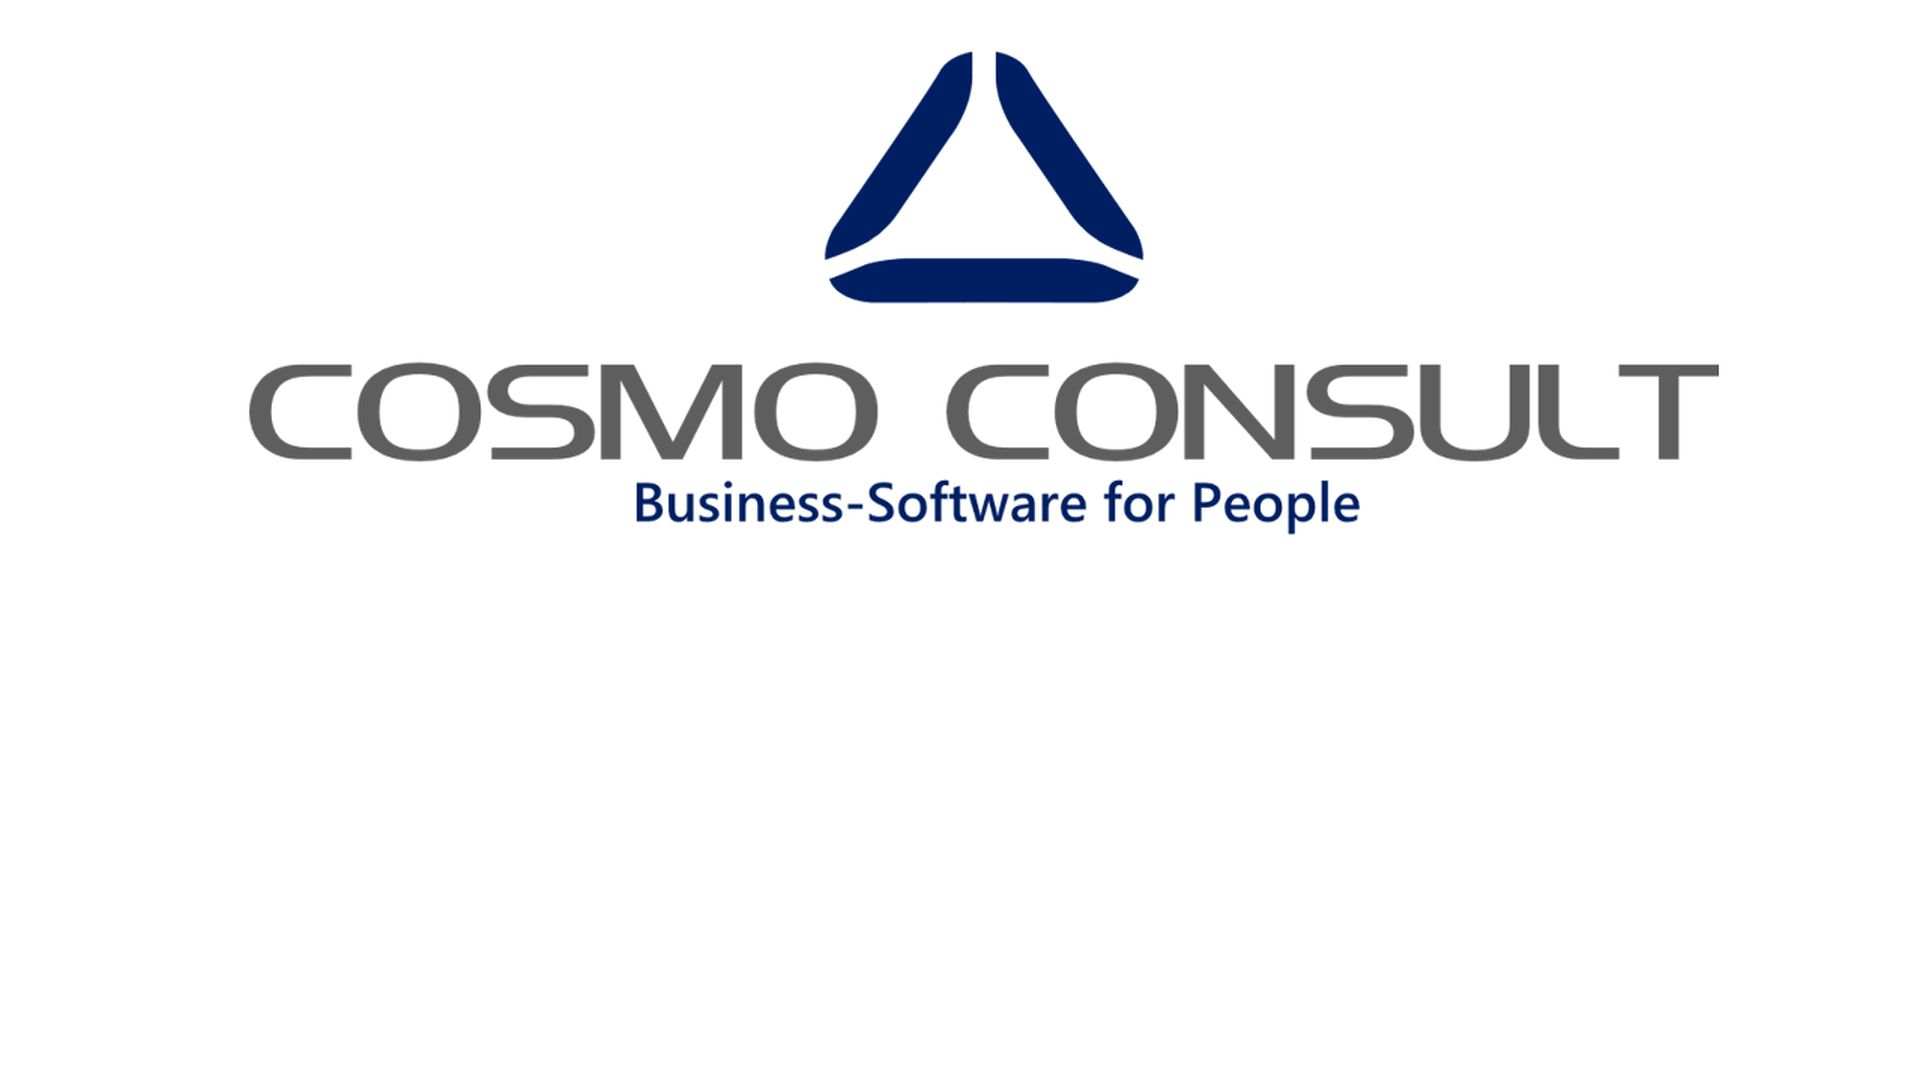 Cosmo Consult Group is to set up IT development and service centres in Debrecen and Szeged